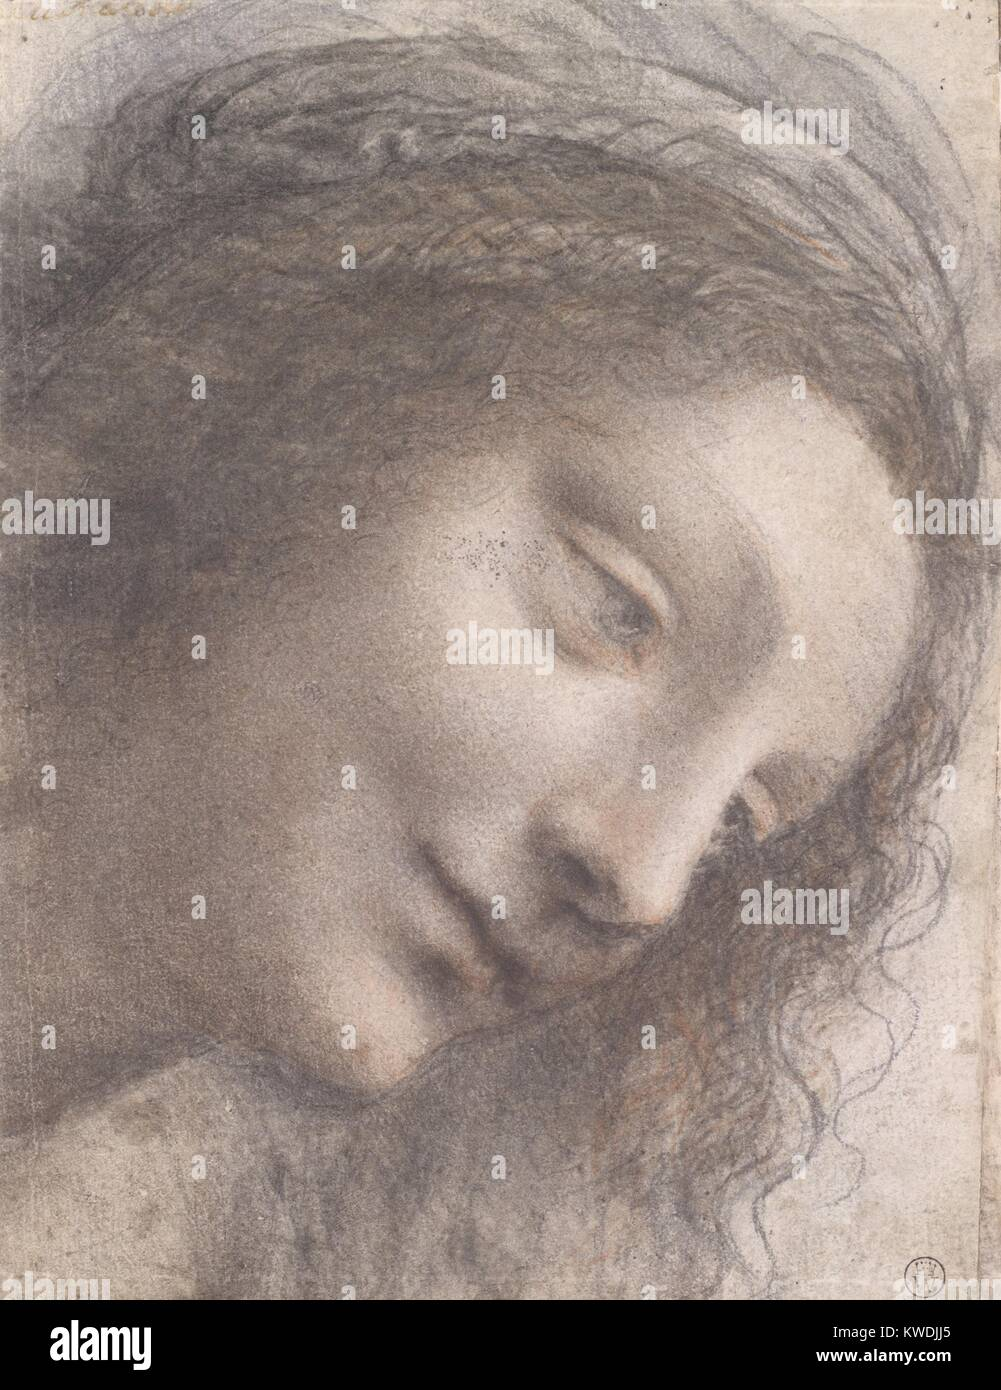 HEAD OF THE VIRGIN, by Leonardo da Vinci, 1510–13, Italian Renaissance chalk and charcoal drawing. This drawing - Stock Image